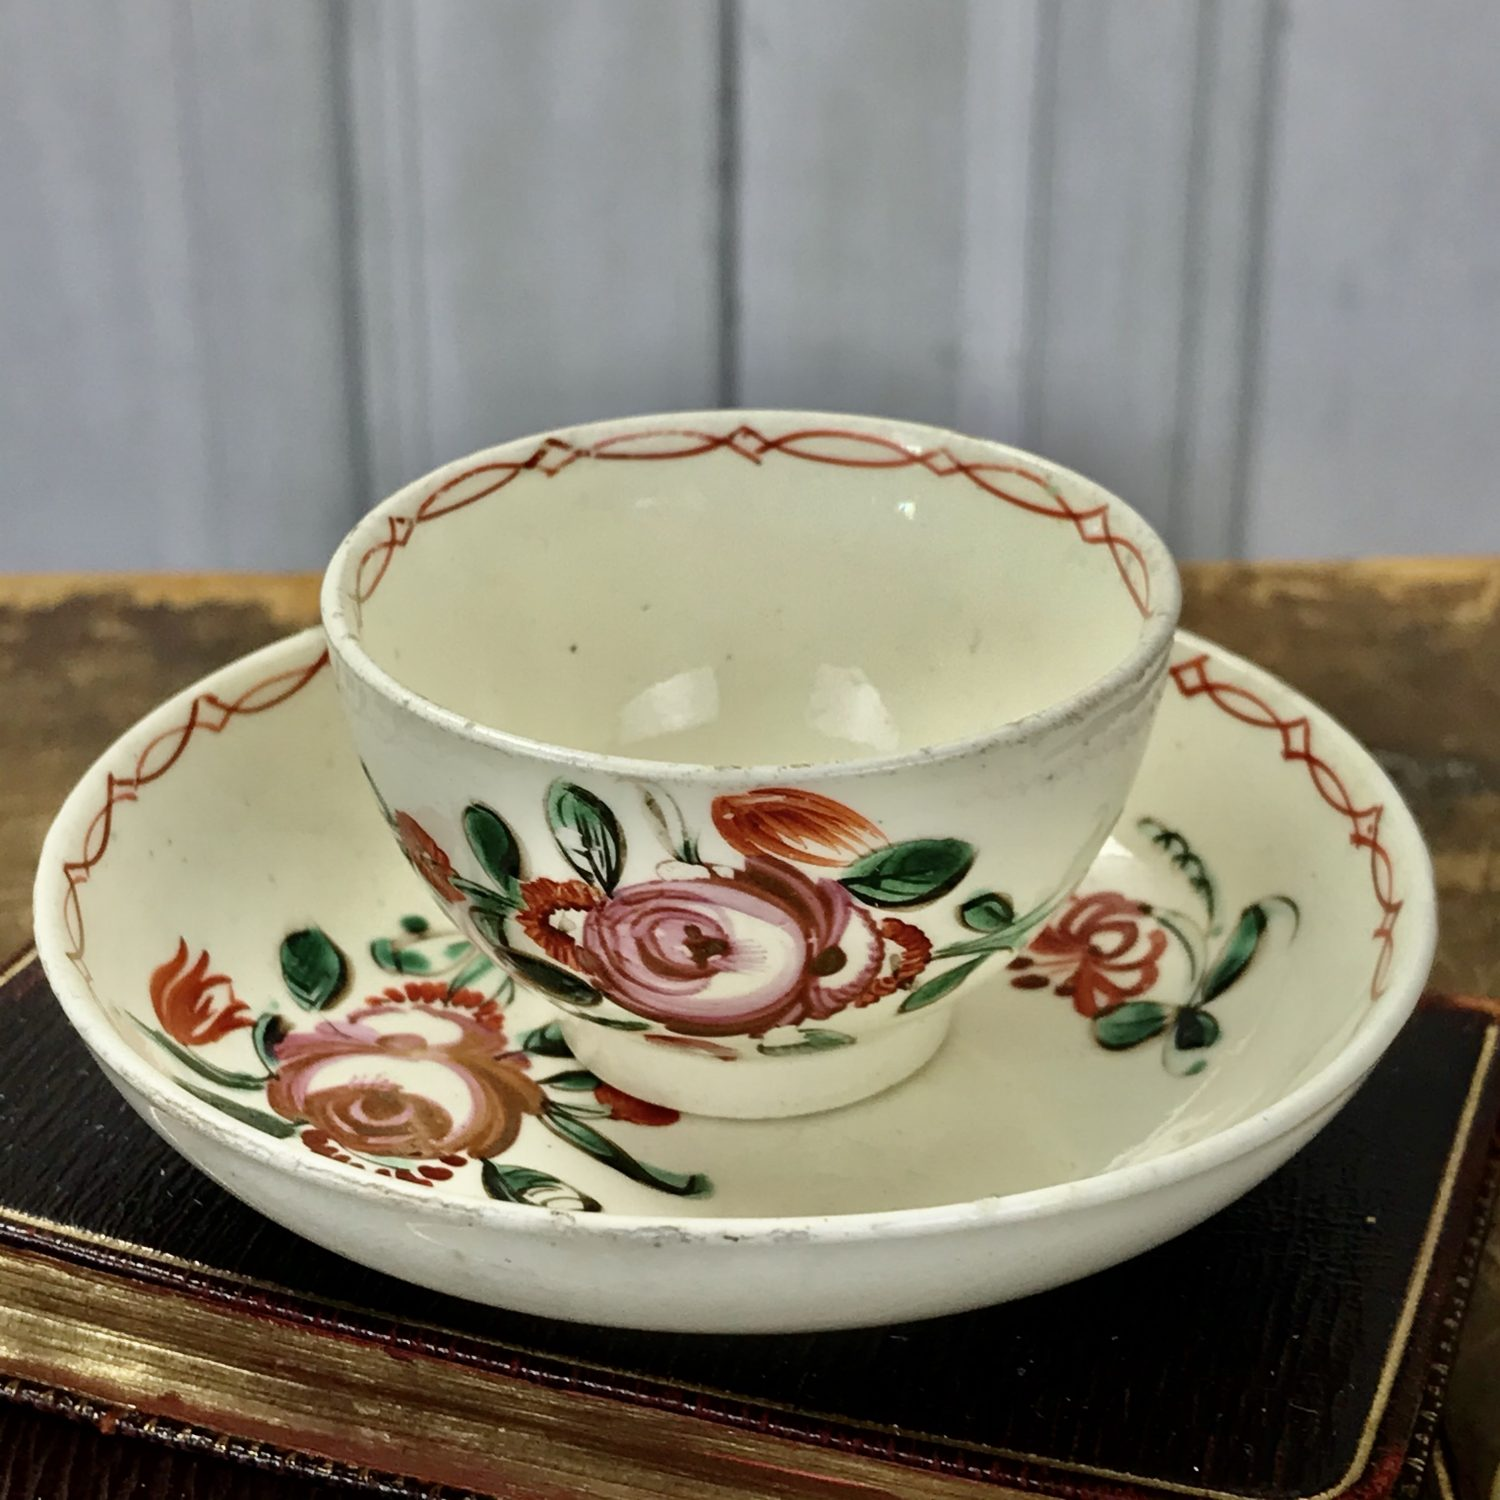 English Creamware Miniature Tea Bowl & Saucer, c1785.